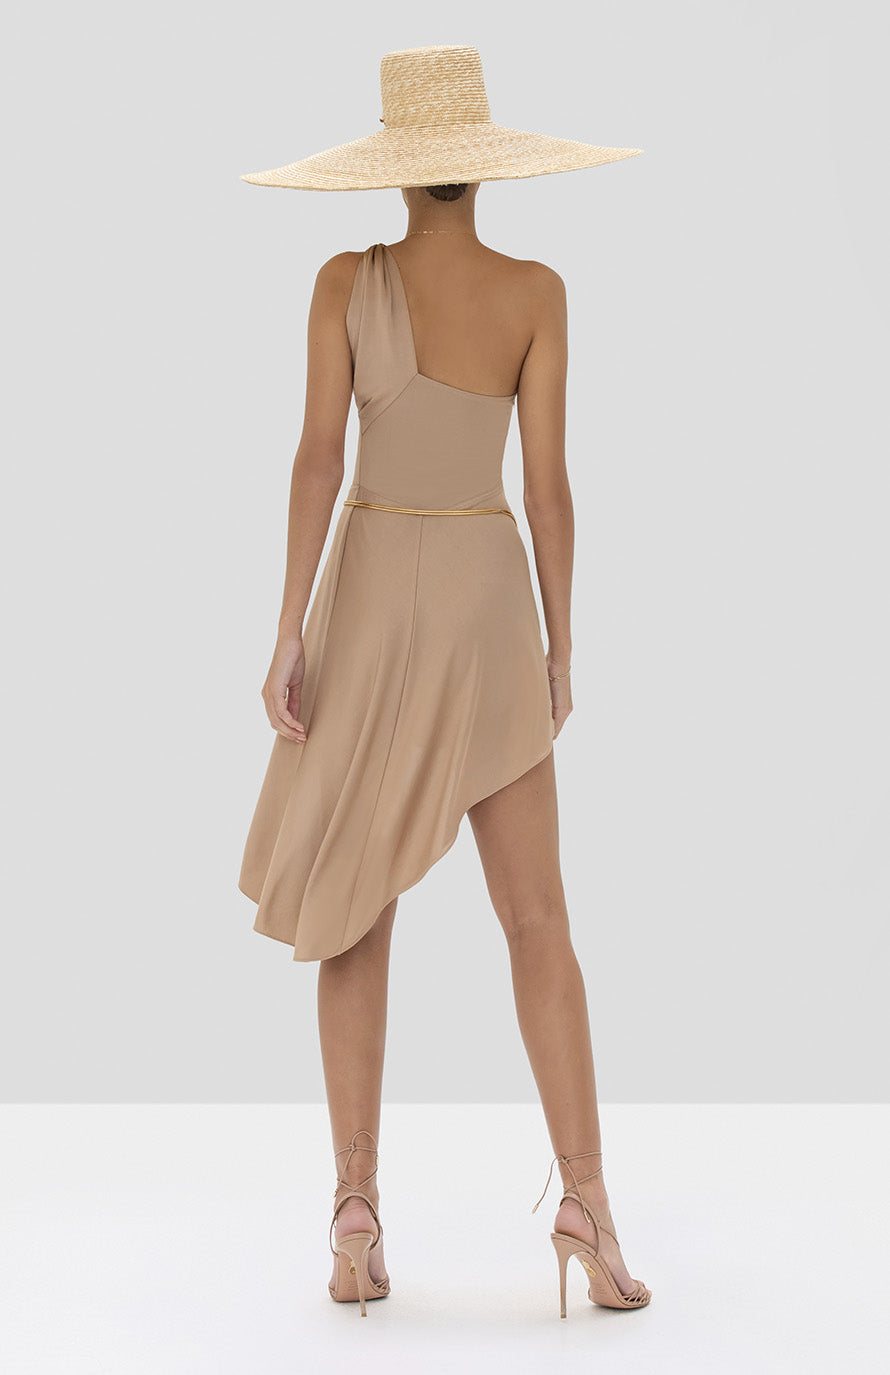 Alexis Mellie Dress in Tan from the Spring Summer 2020 Collection - Rear View